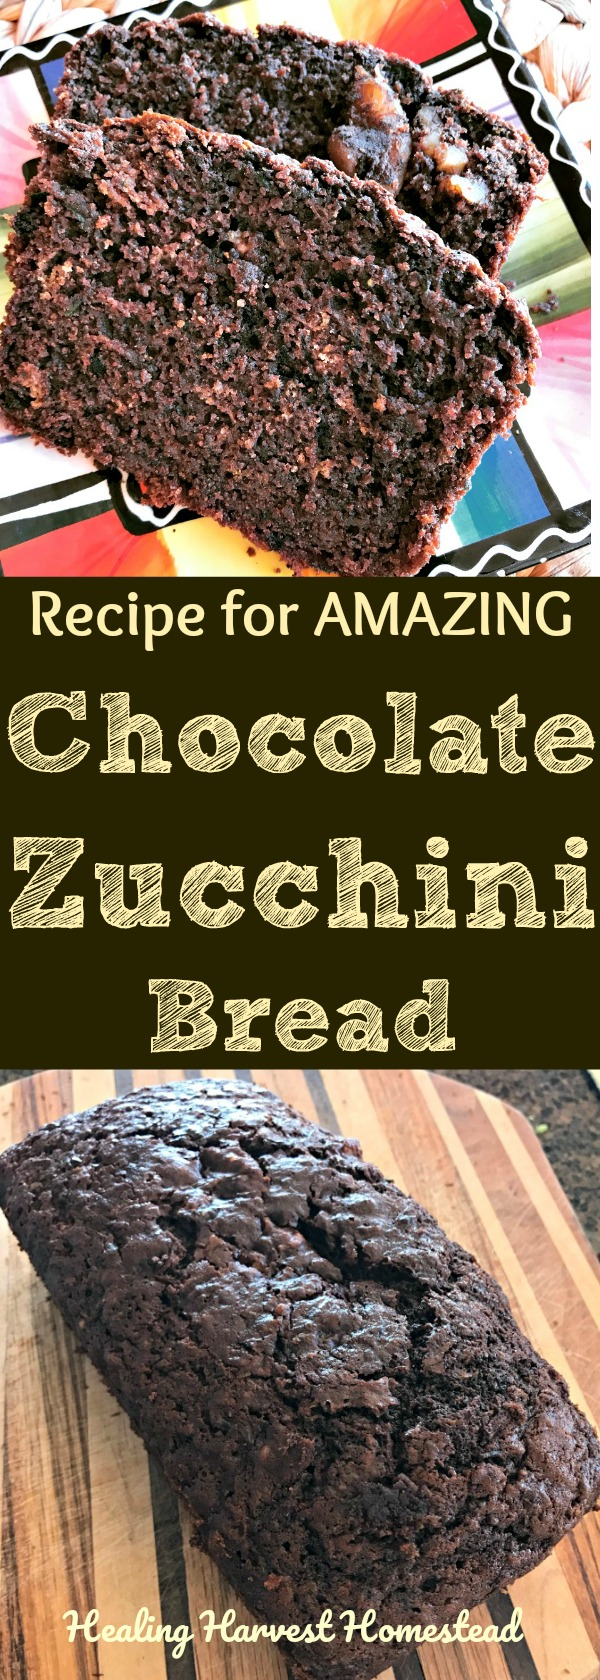 Got too much zucchini? Make zucchini bread! Here's a recipe for my chocolate zucchini bread that is AMAZING! It's also easy. Delicious, healthy recipe for chocolate zucchini bread!